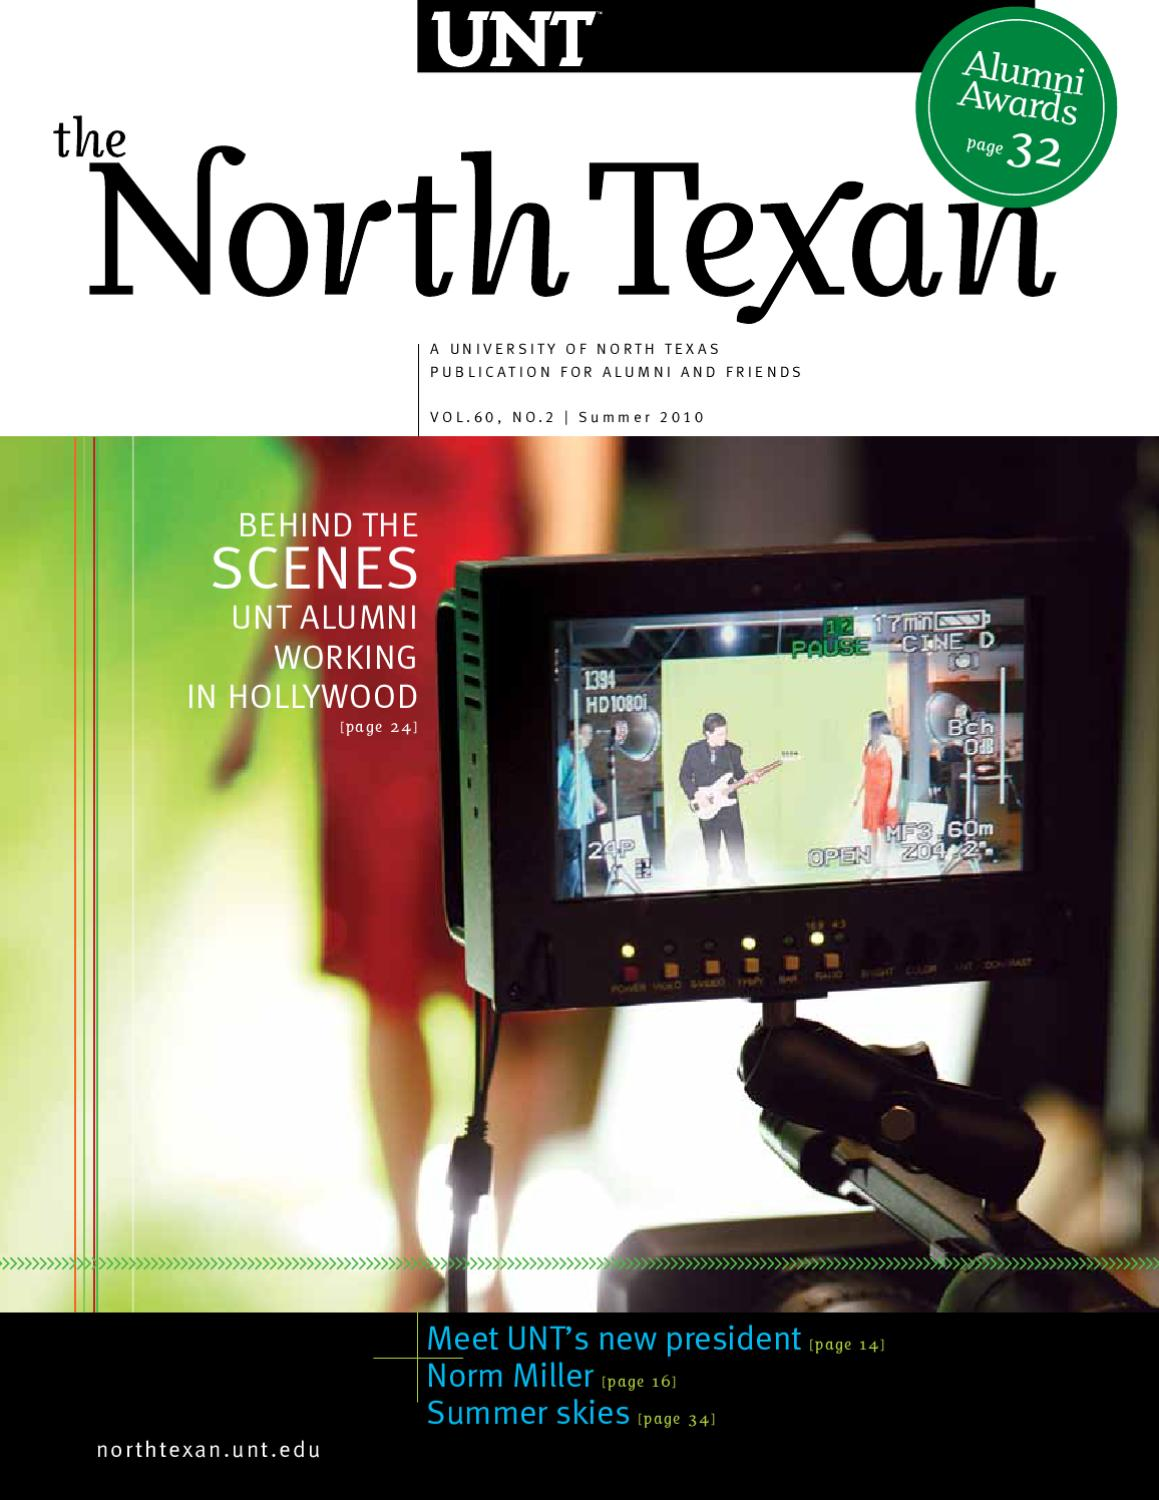 The aerie yearbook of university of north texas 1995 page 44 unt - The North Texan Unt Alumni Magazine Summer 2010 By University Of North Texas Issuu